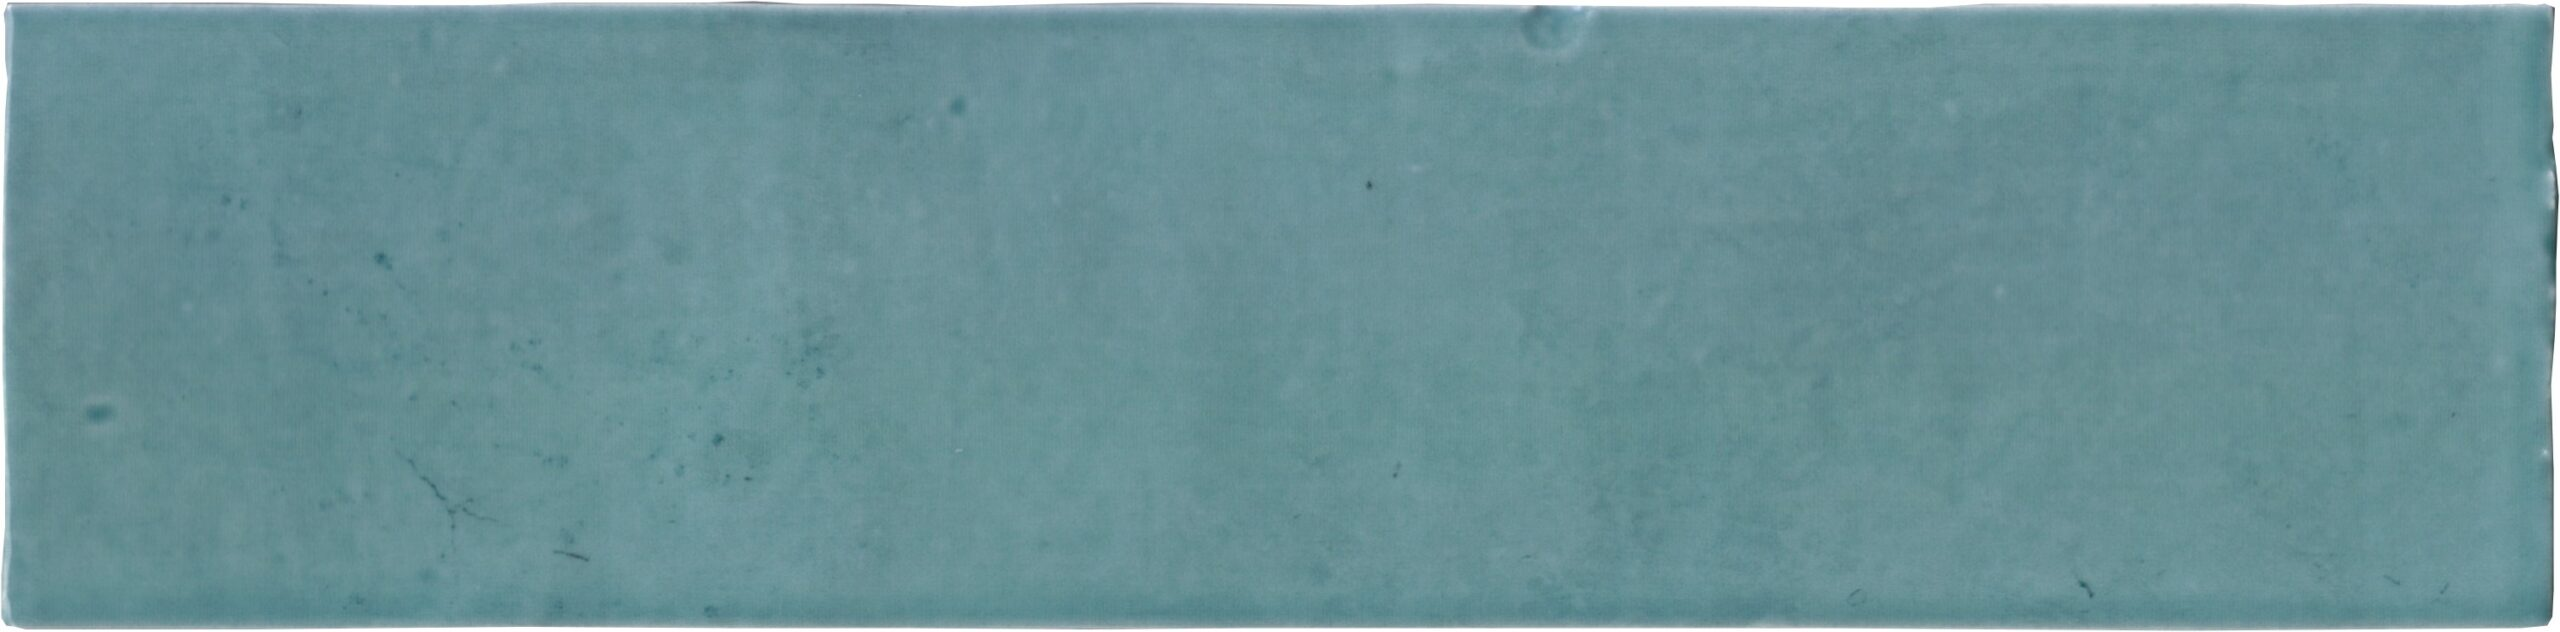 Turquoise Glossy